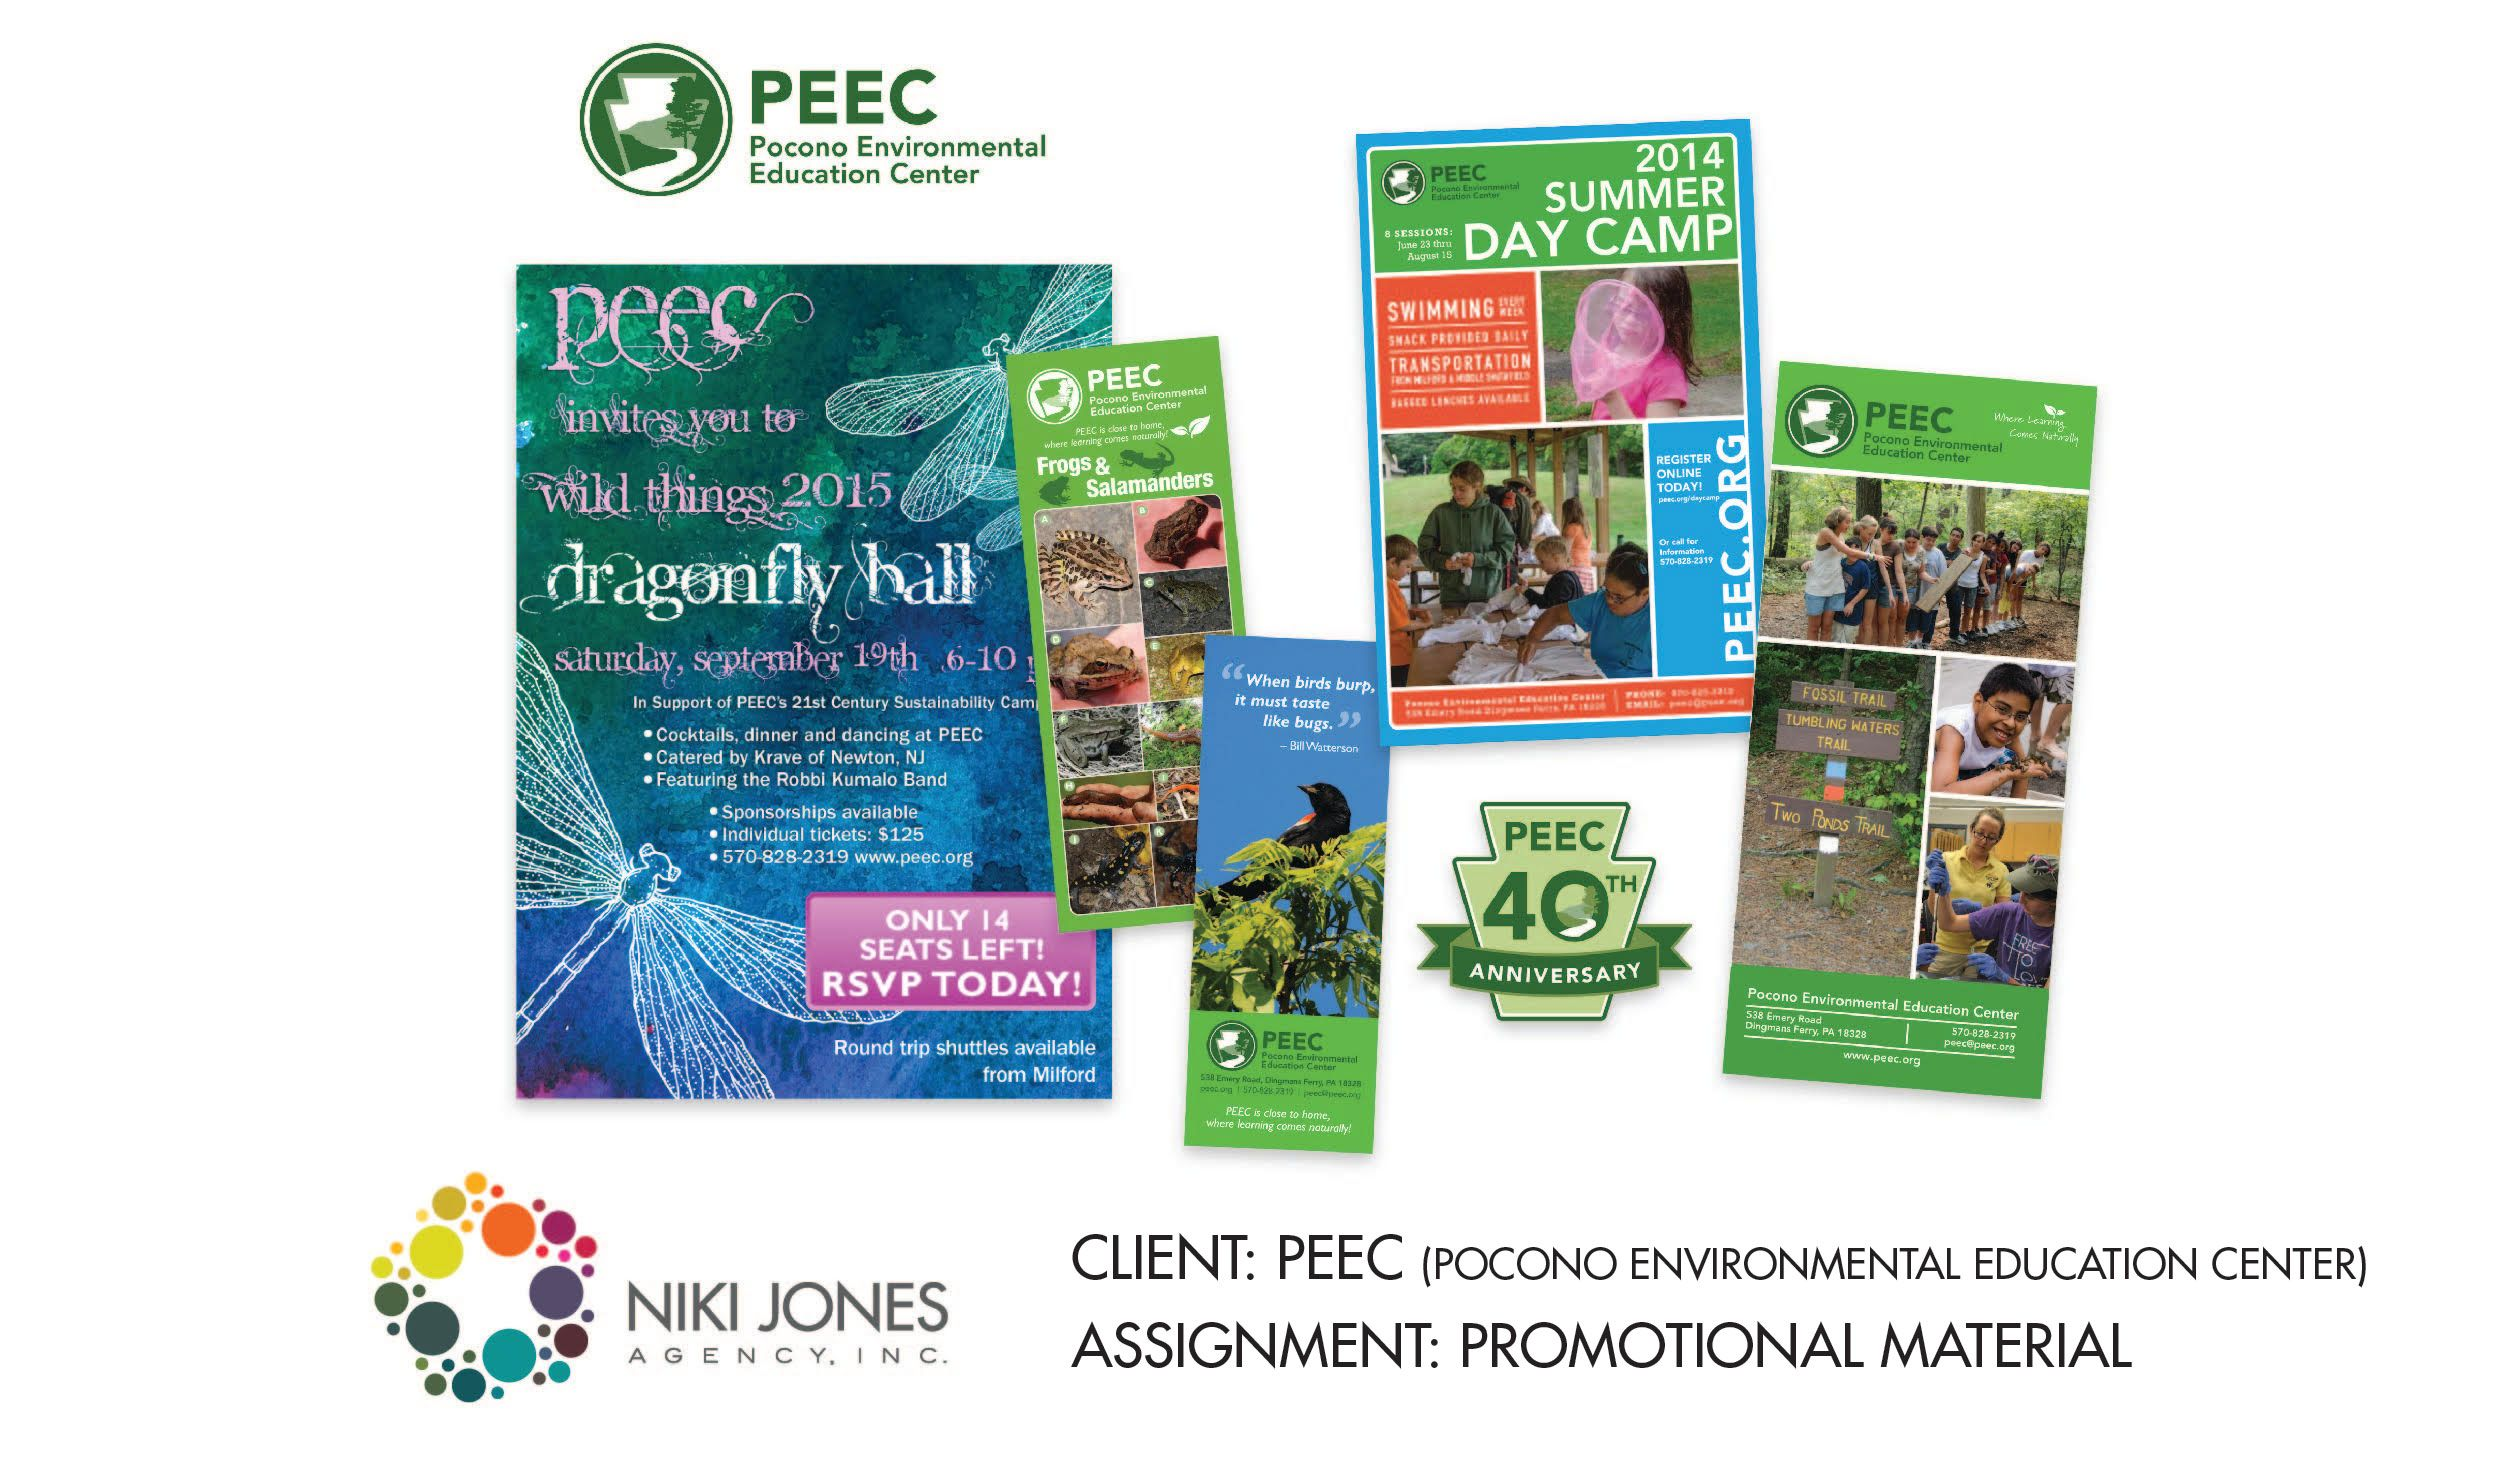 NJA Portfolio - Pocono Environmental Education Center Featured Work